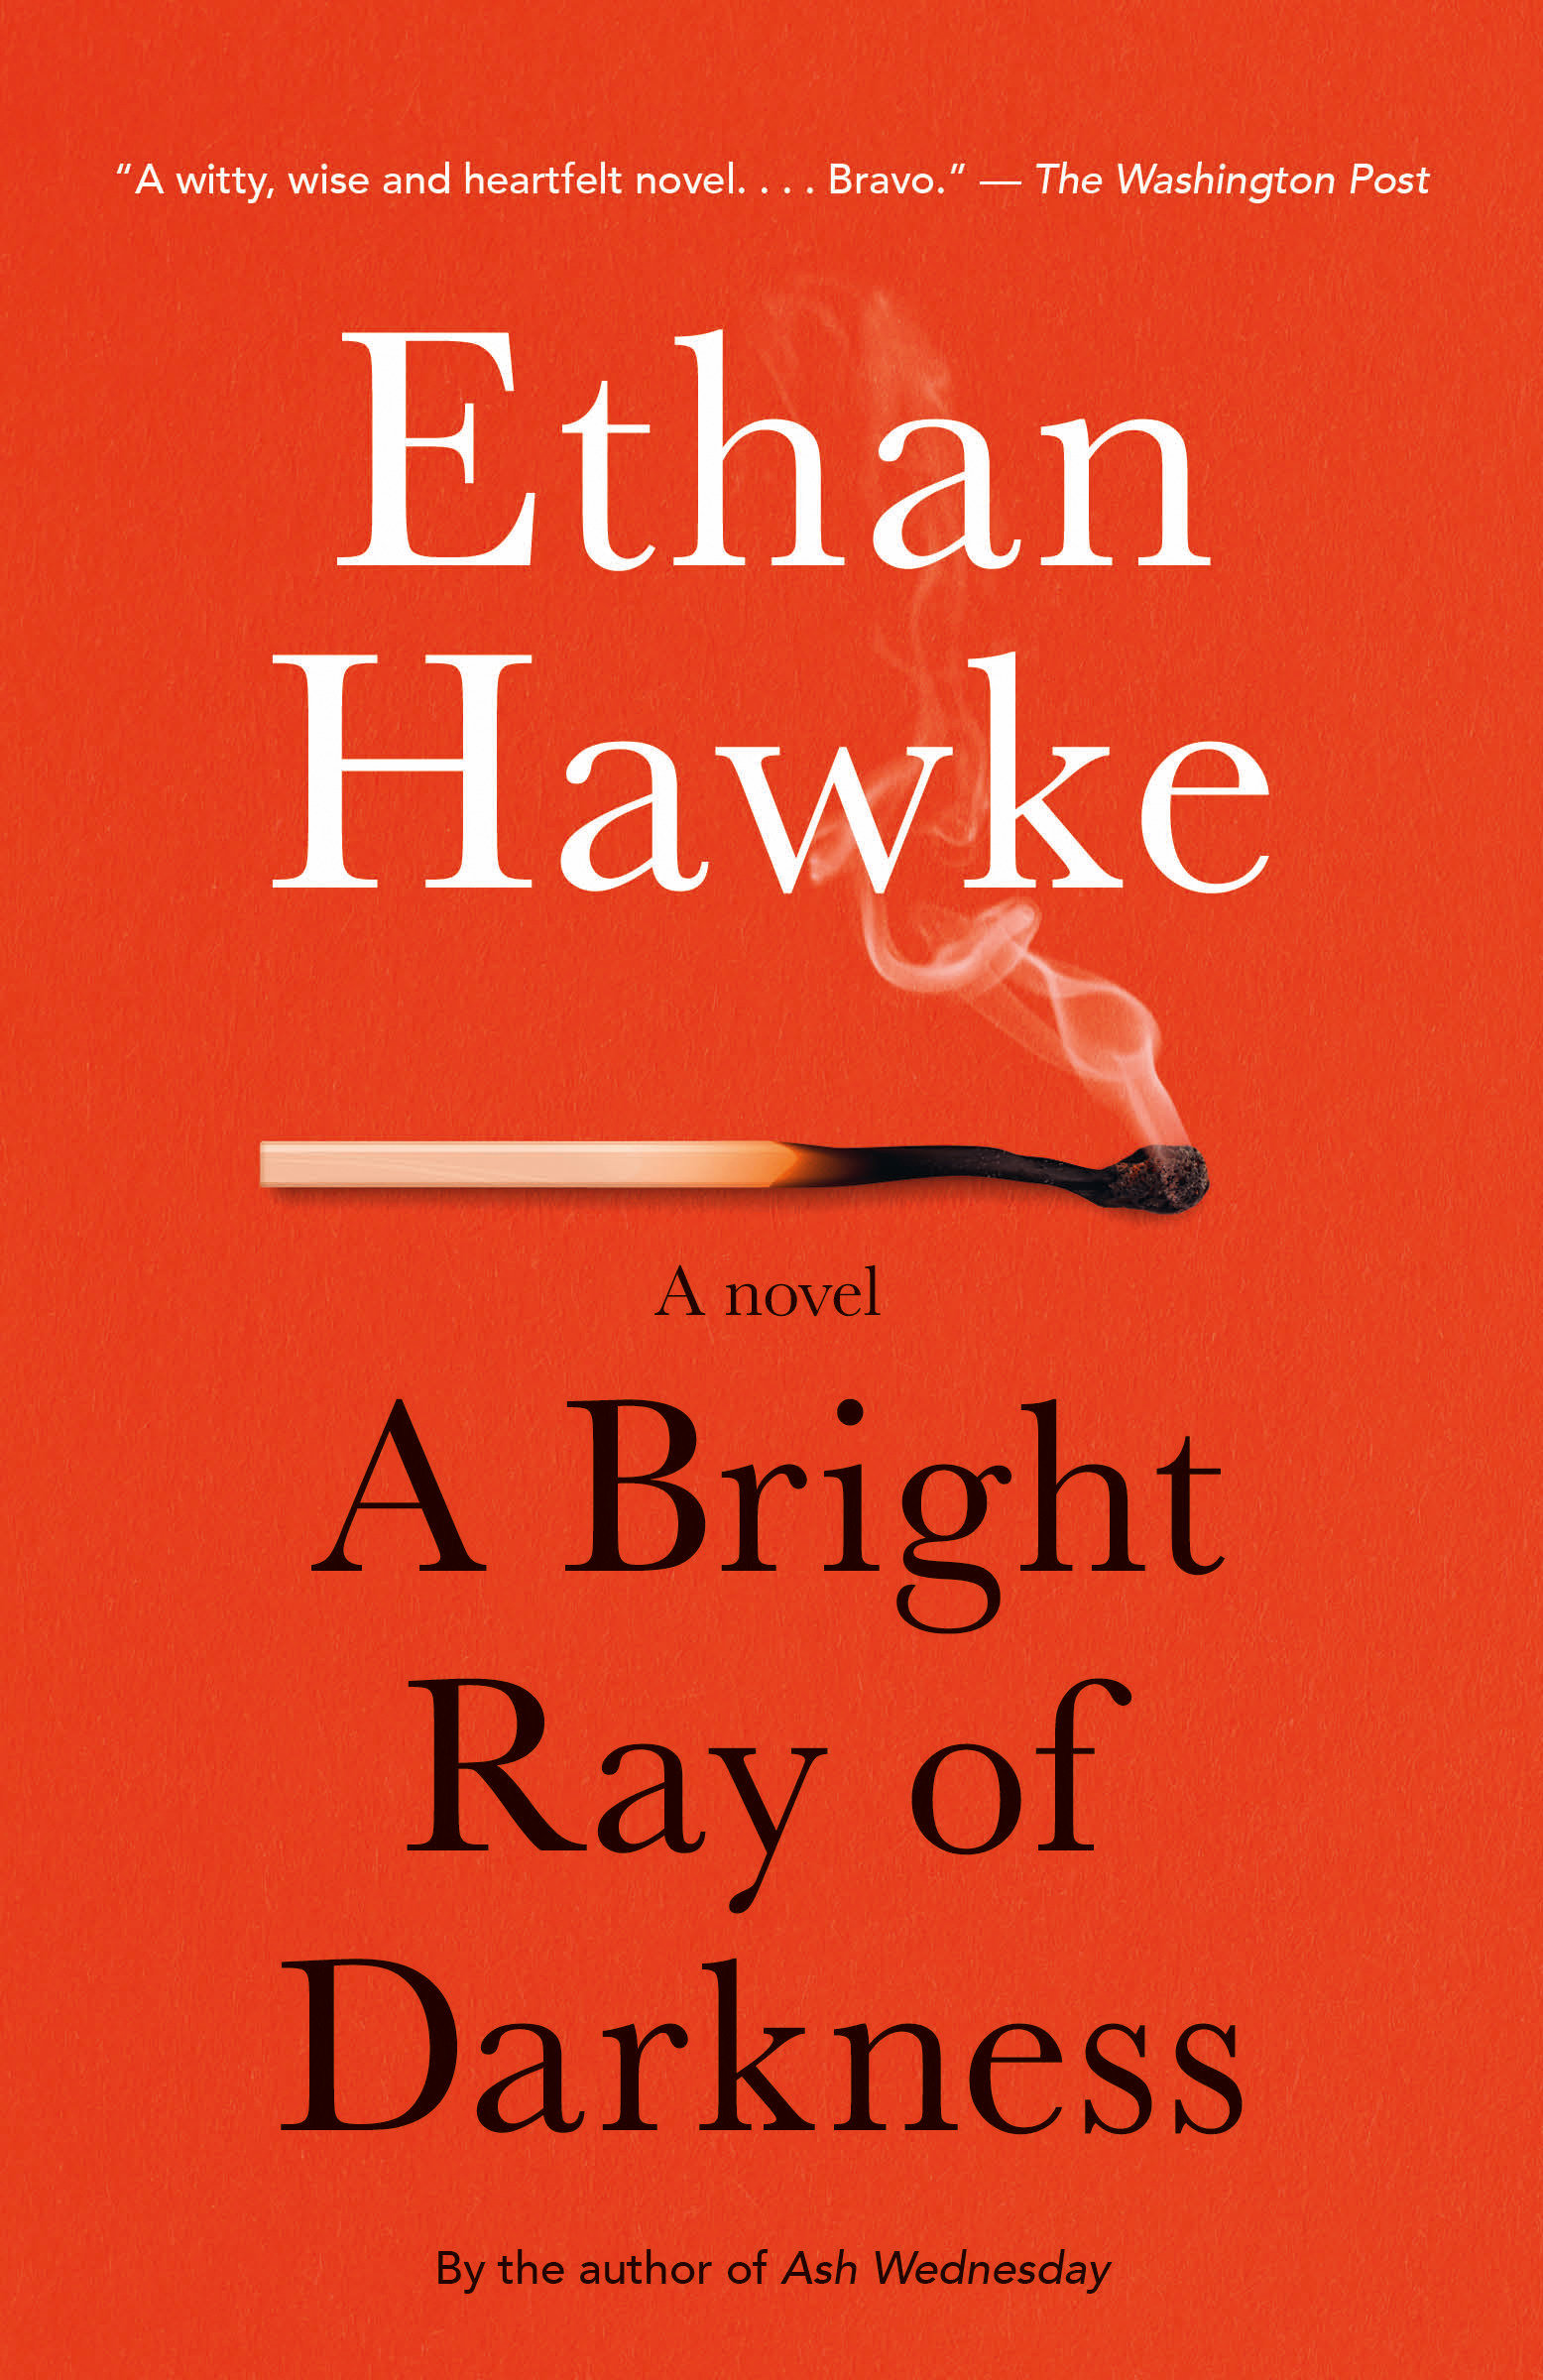 A Bright Ray of Darkness A novel